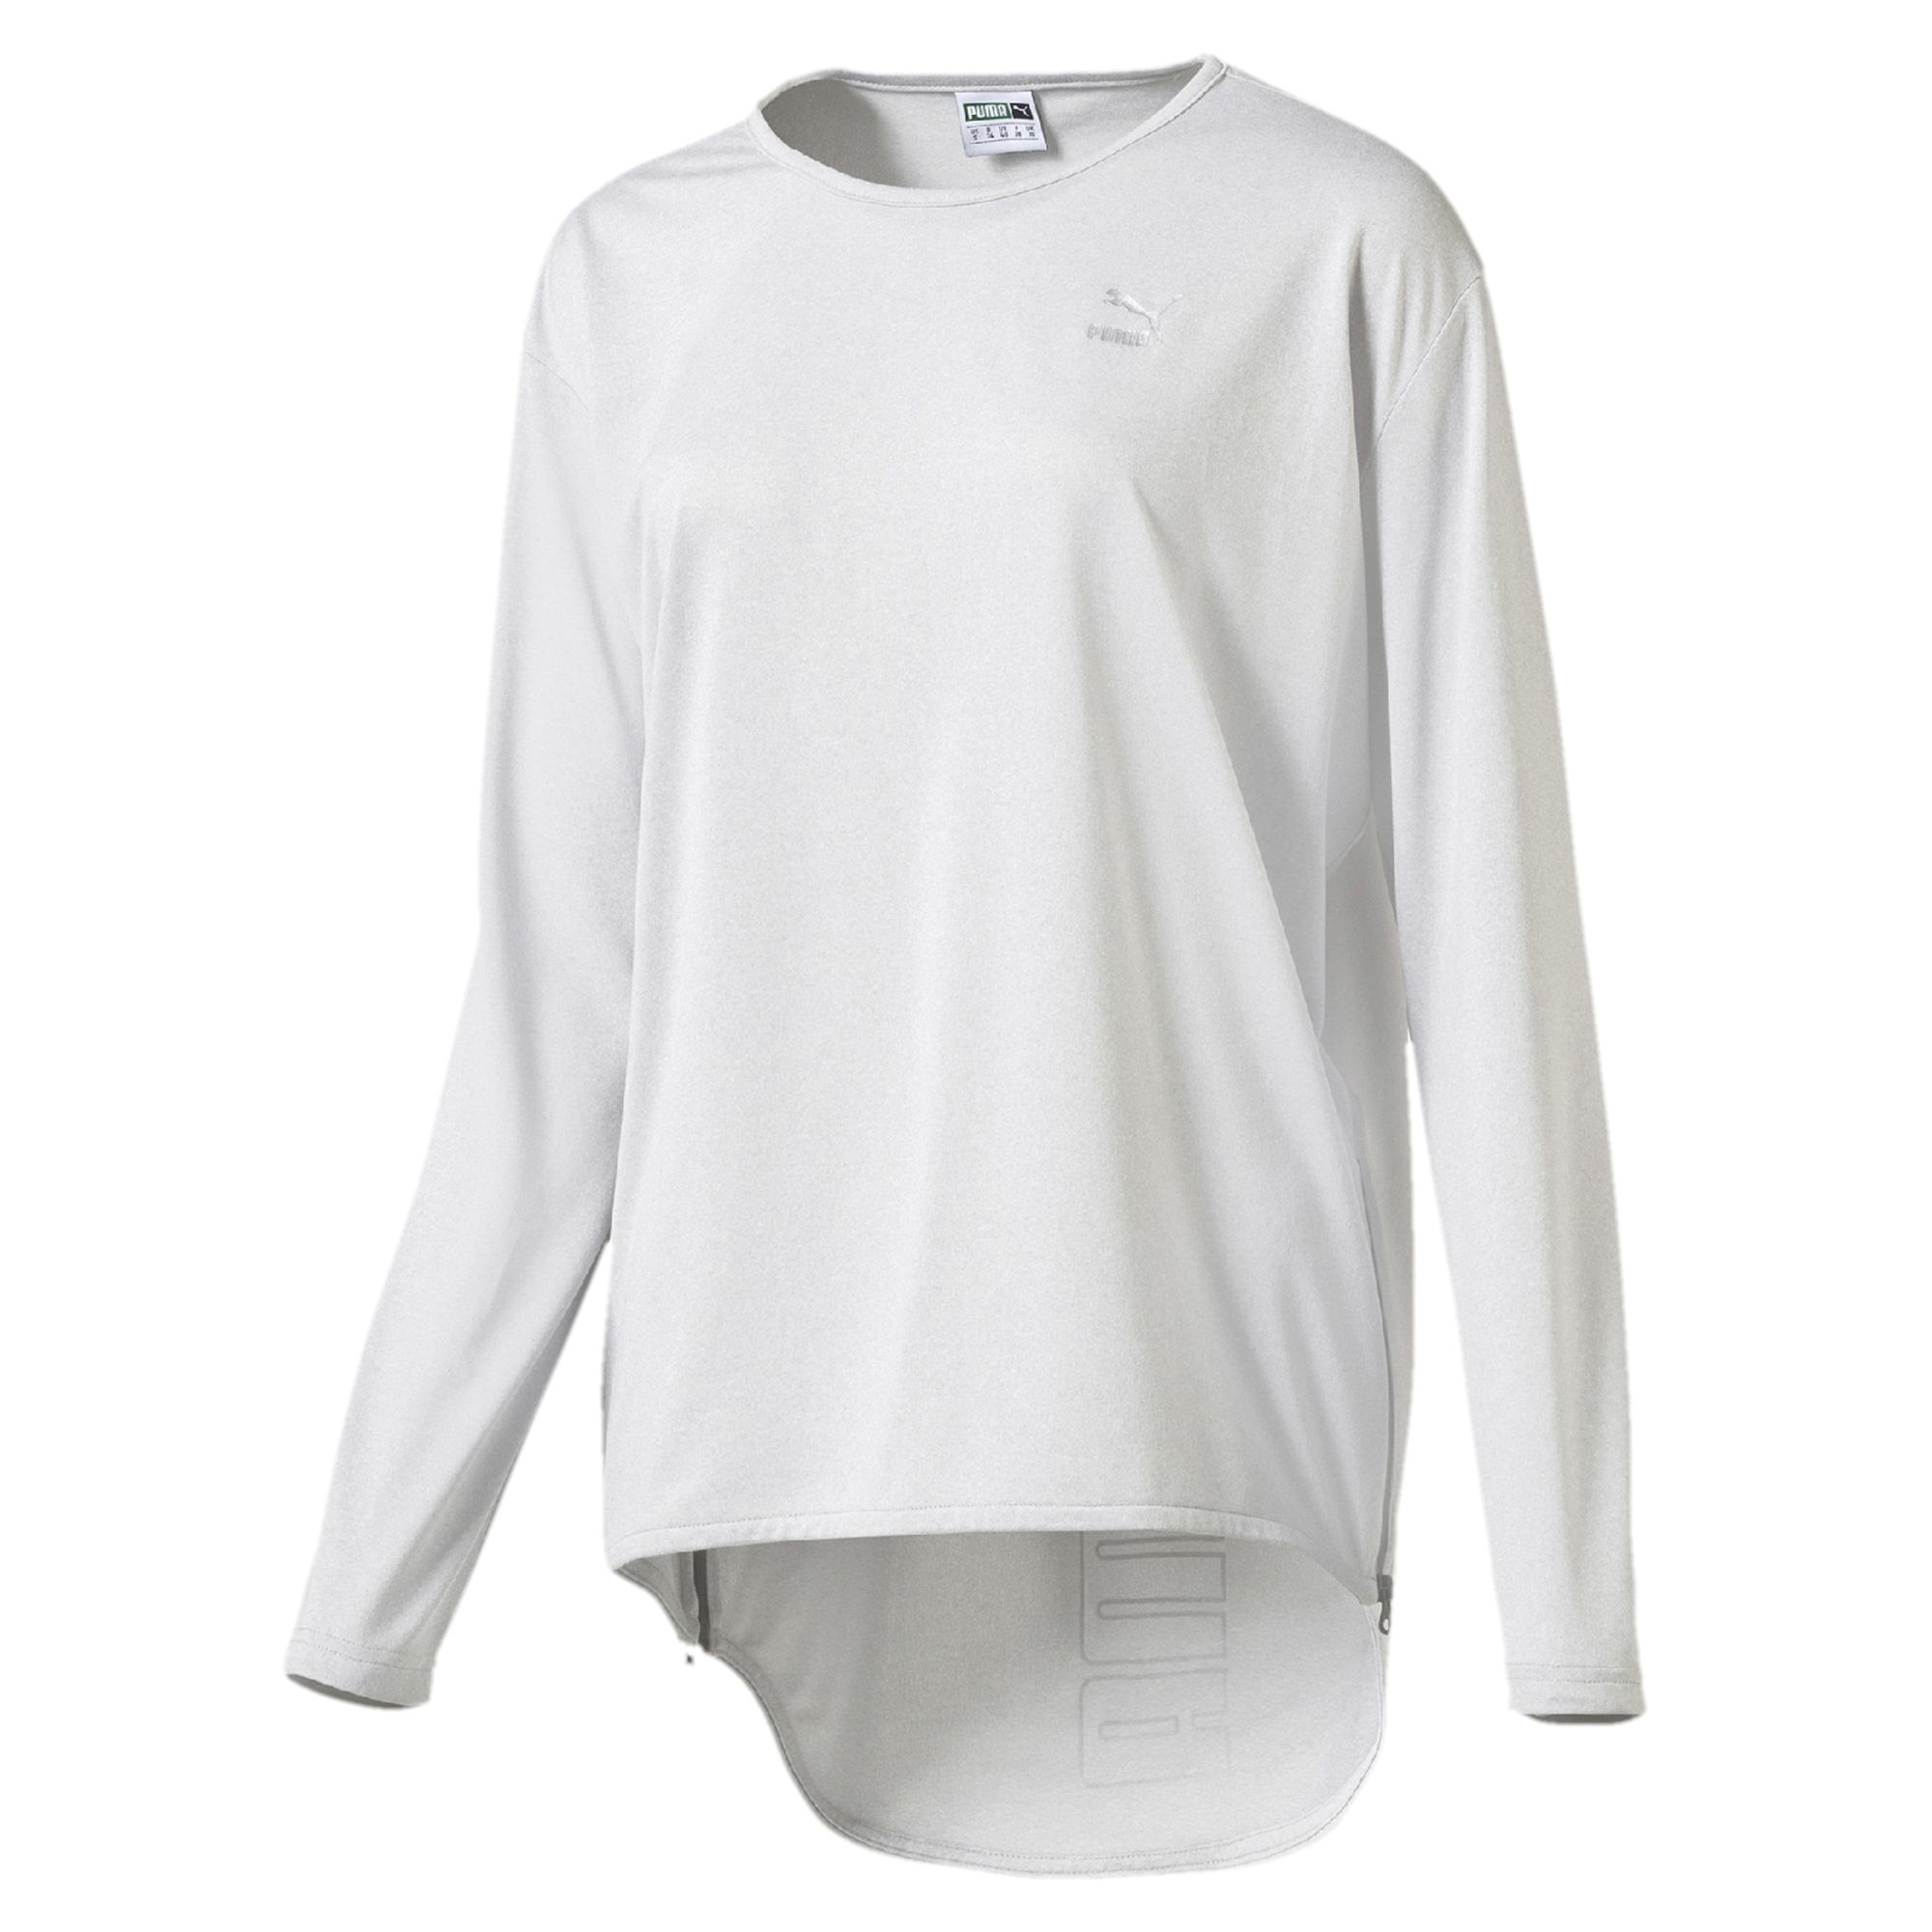 Puma Long Bell Sleeves T Shirt In White Lyst